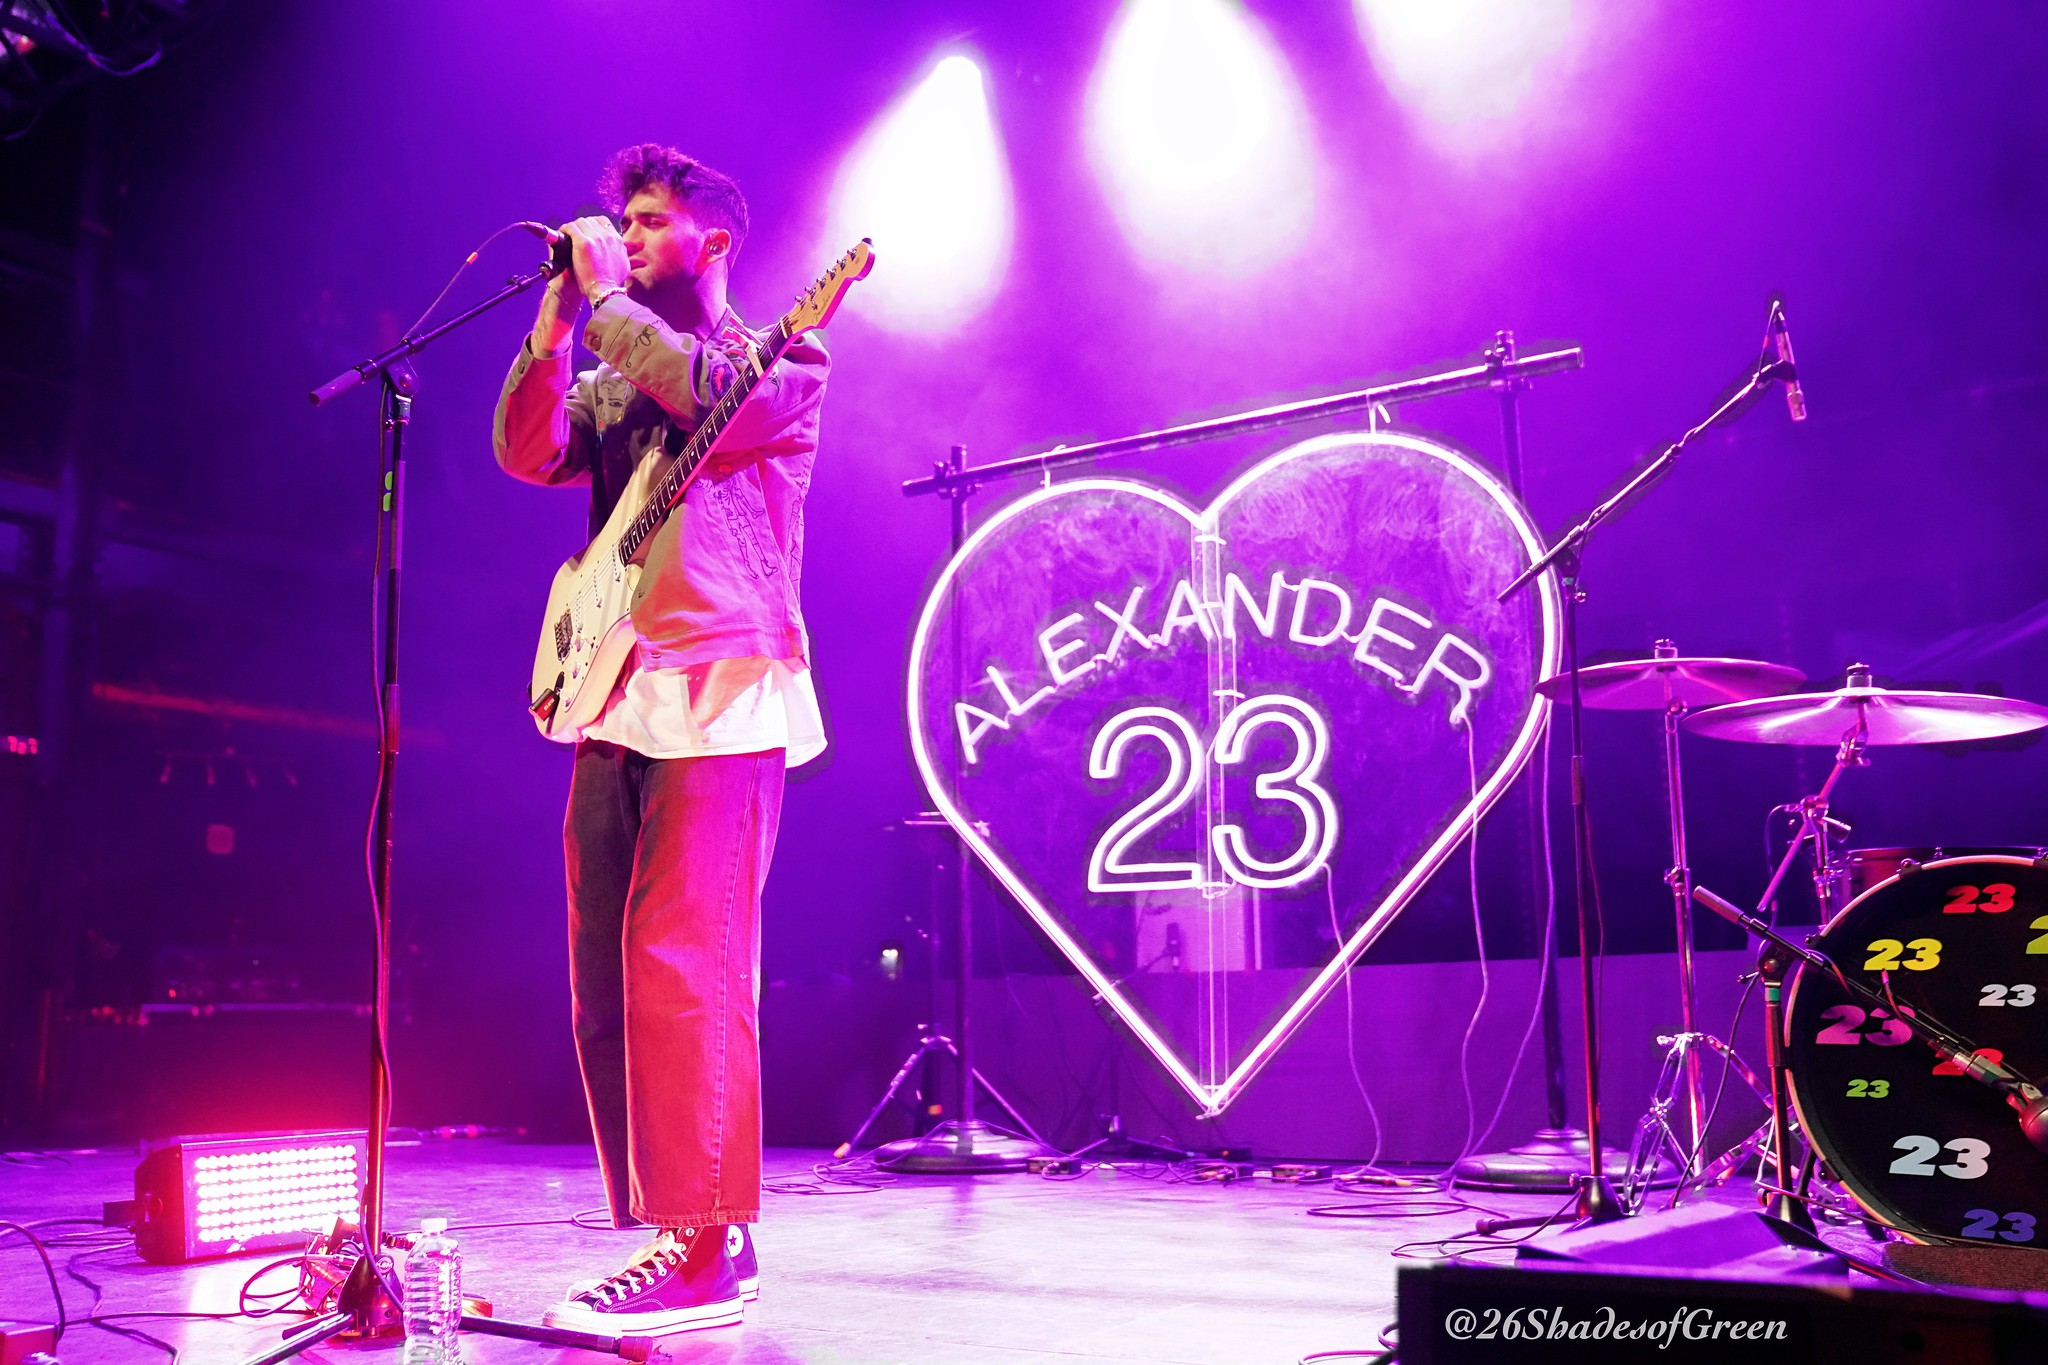 Chelsea Cutler + Alexander 23 & X Lovers - Terminal5 NYC - March 3rd, 2020